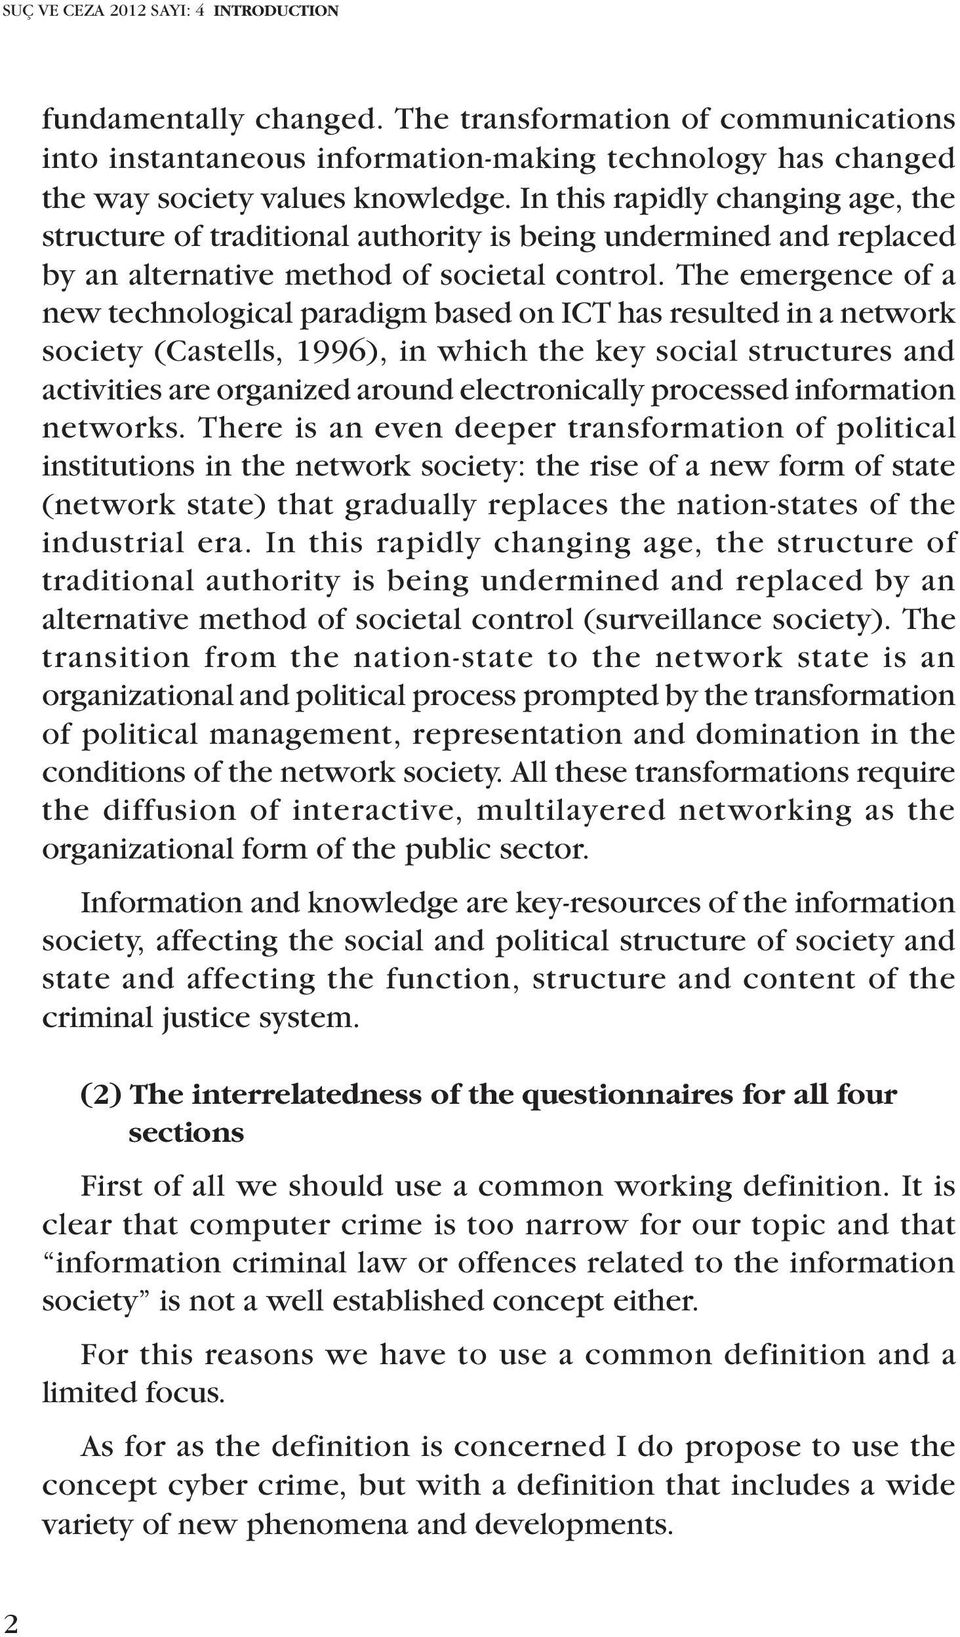 The emergence of a new technological paradigm based on ICT has resulted in a network society (Castells, 1996), in which the key social structures and activities are organized around electronically